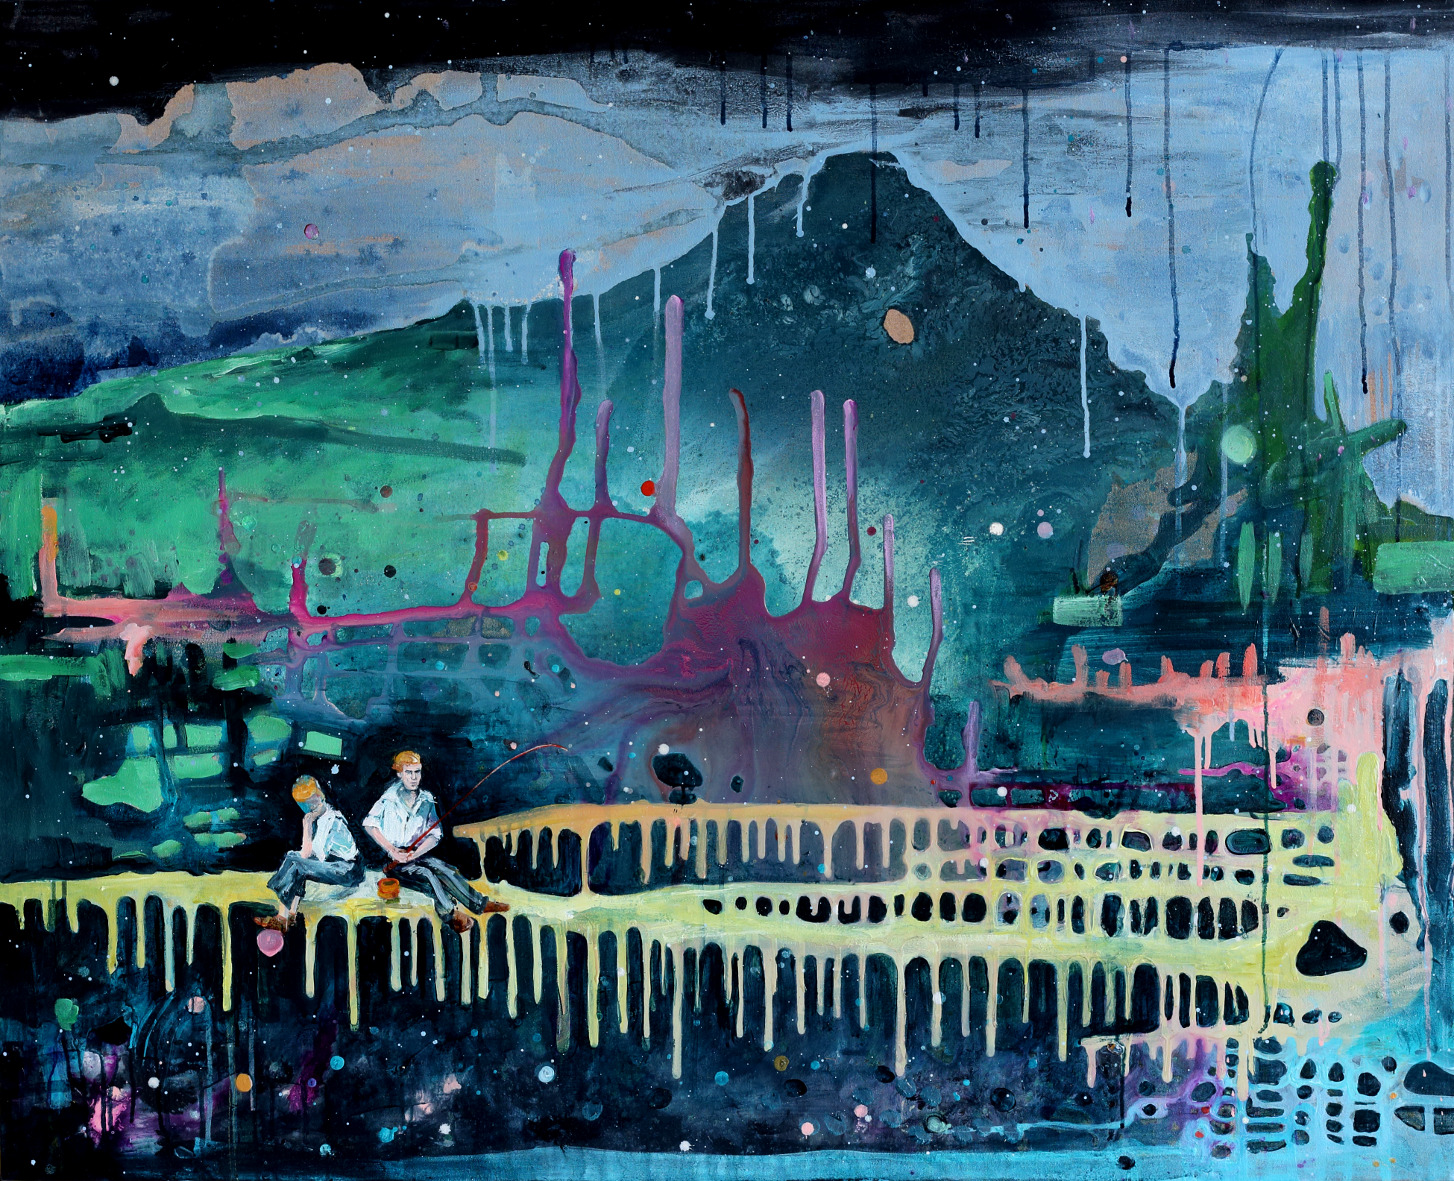 """Kathryn Cowen, """"Little Do They Know"""", 2013, acrylic, ink and resin on canvas, 97.5 x 120cm"""